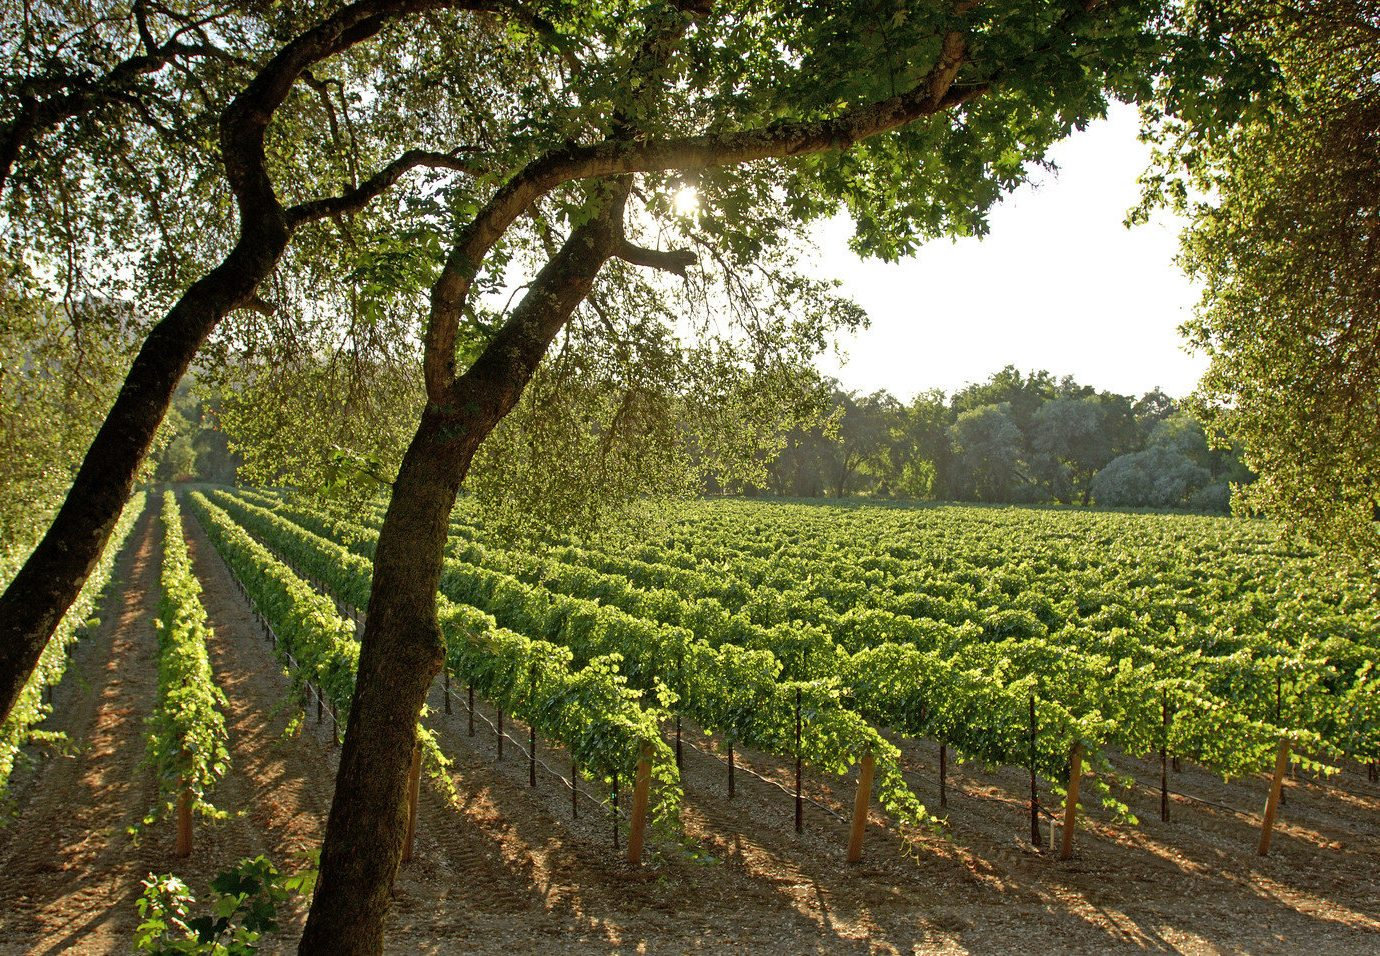 Offbeat tree outdoor agriculture plant green plantation field Vineyard botany soil flower rural area leaf produce Farm crop shrub woodland shade surrounded lush wooded